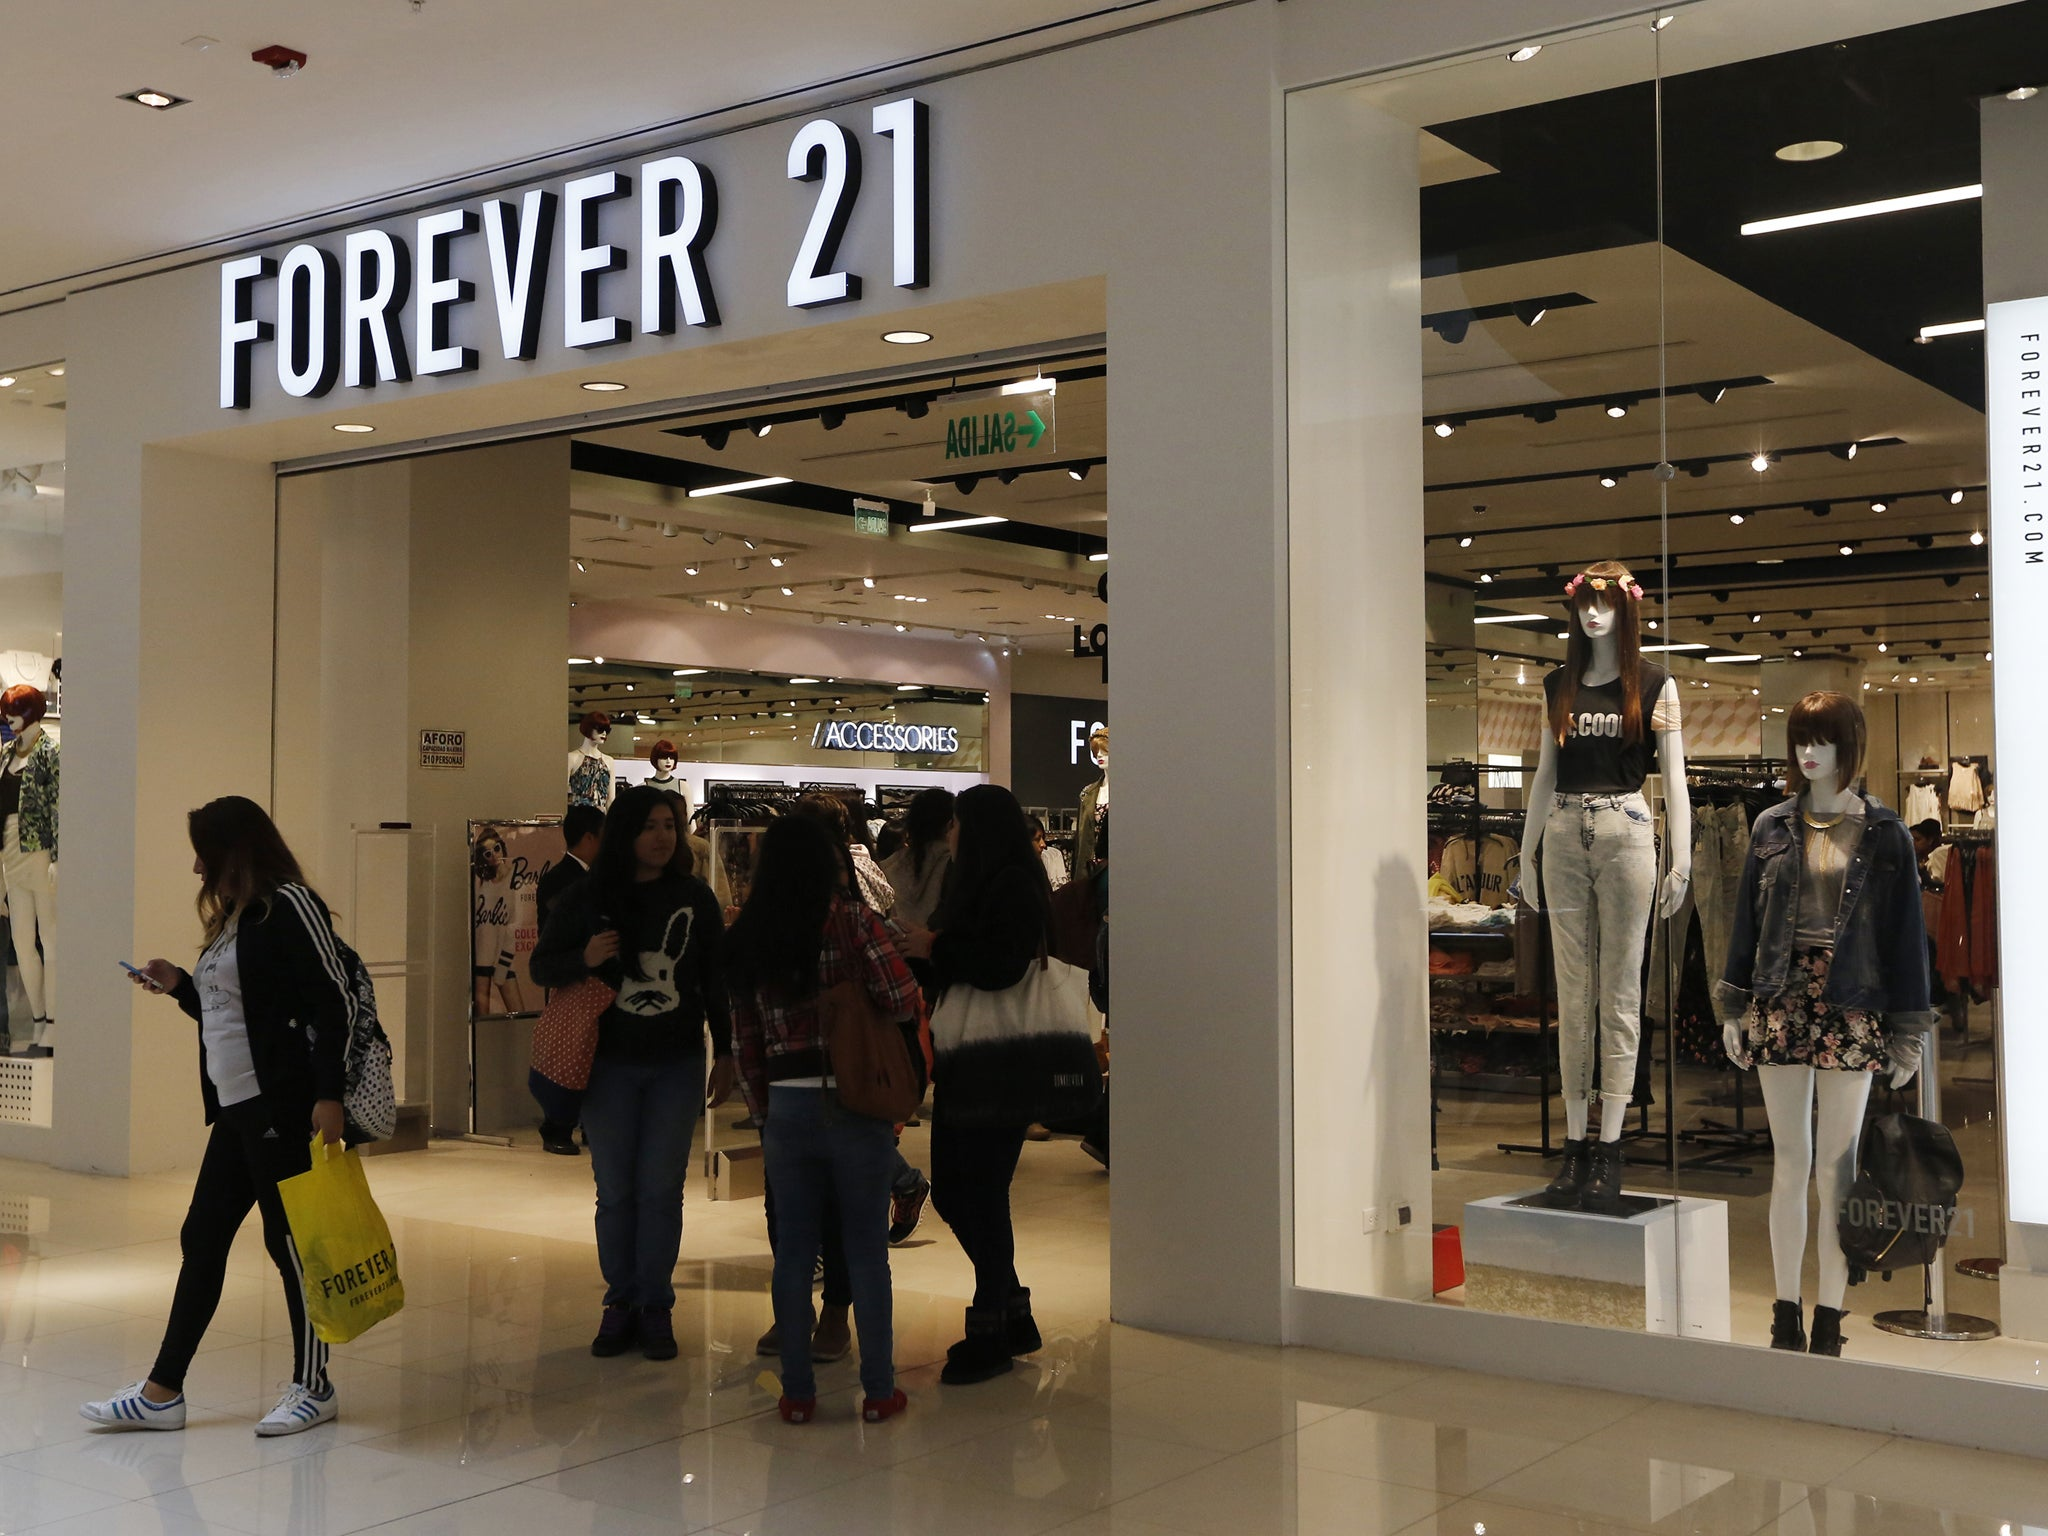 The Forever 21 name represents what it means to look and feel youthful in the trendiest of styles. Whether it is a classic Forever 21 dress with cocktail flair or a skirt in geometric prints, dressy looks range from party ready to office chic.